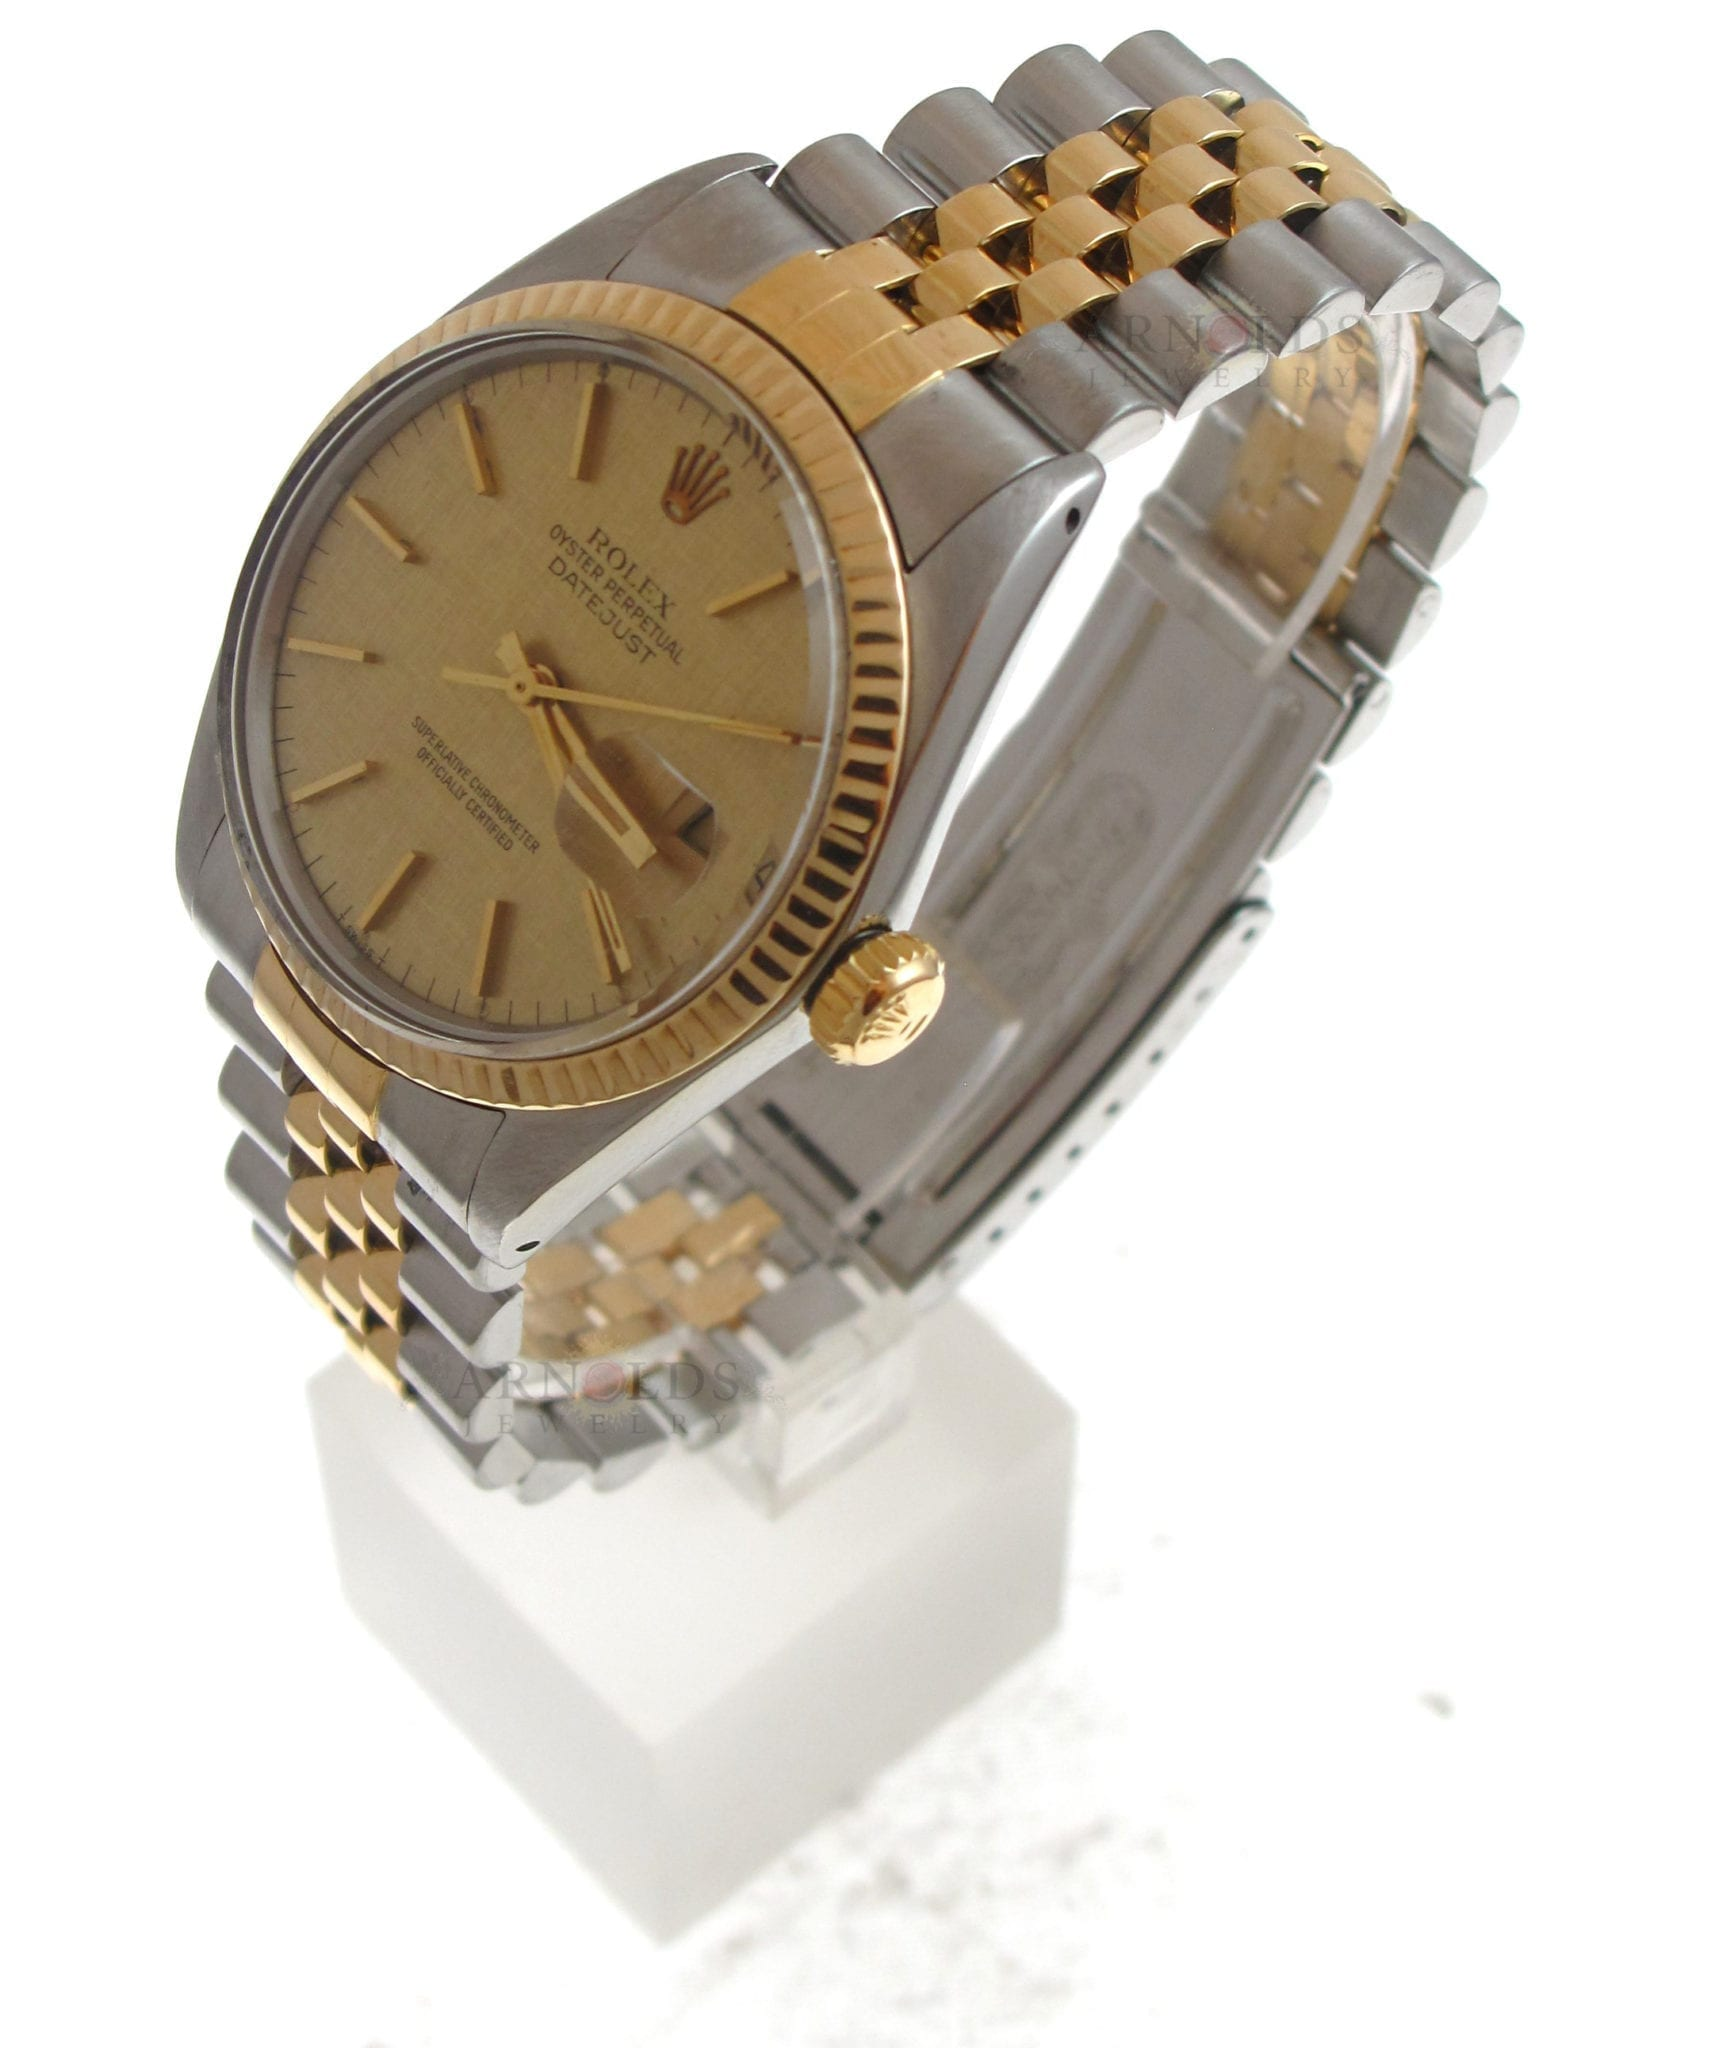 1592b0ca0bf Previous; Next. 1; 2. Previous; Next. Pre-Owned 1982 Two Tone Rolex  Datejust Watch Champagne Florentine Dial With Fluted Bezel And Jubilee Band  ...